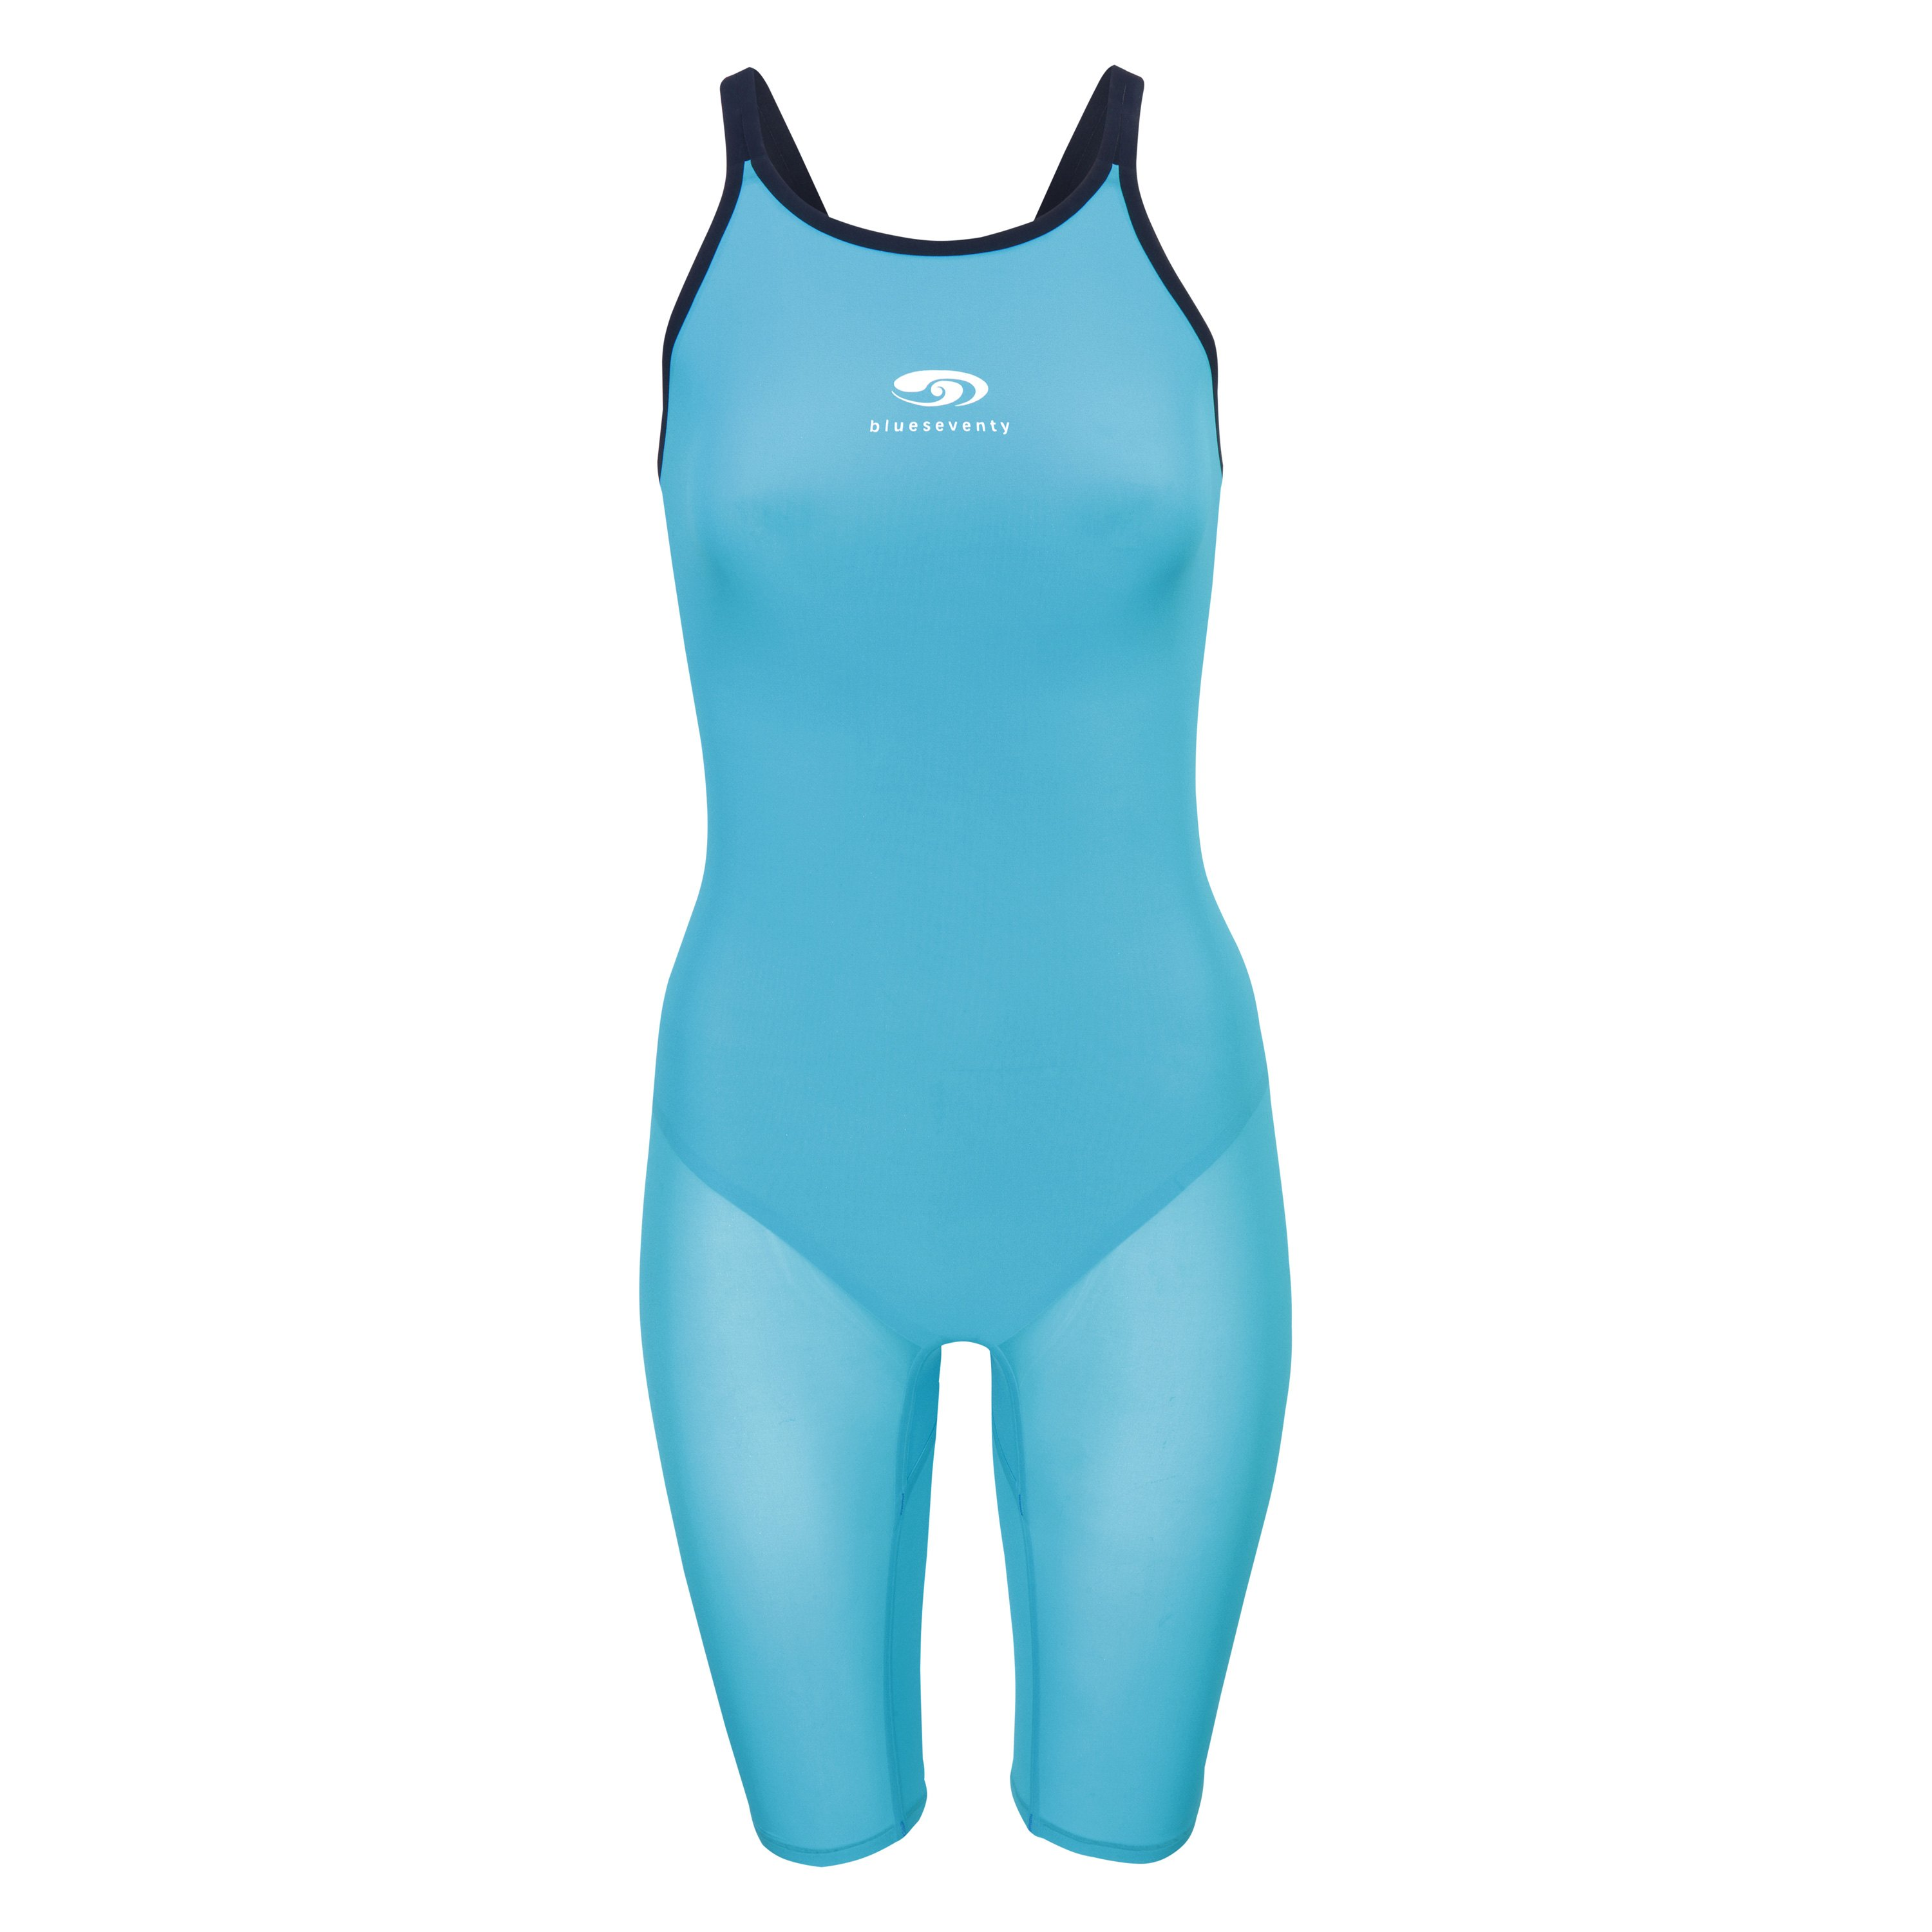 2a3cb50715f Blueseventy® SRFIT-15-TUR-0W22 - Women NeroFIT Kneeskin Tech Suits ...